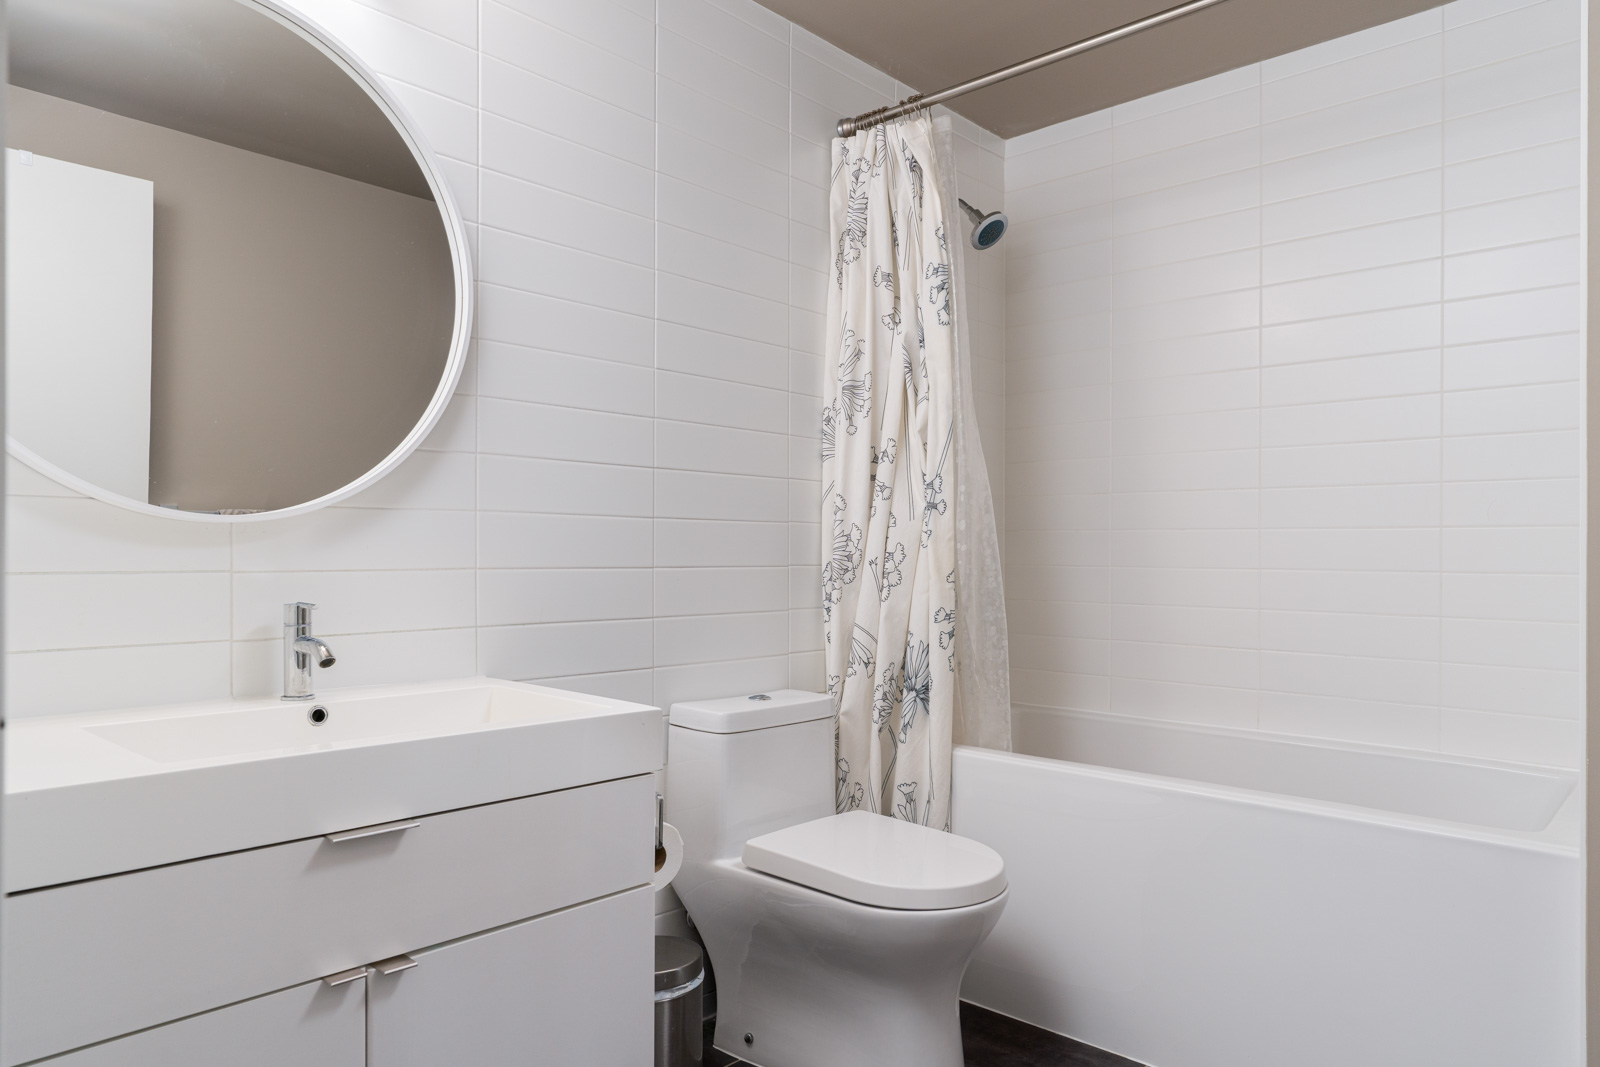 bathroom with tiles in shine at Mount pleasant vancouver